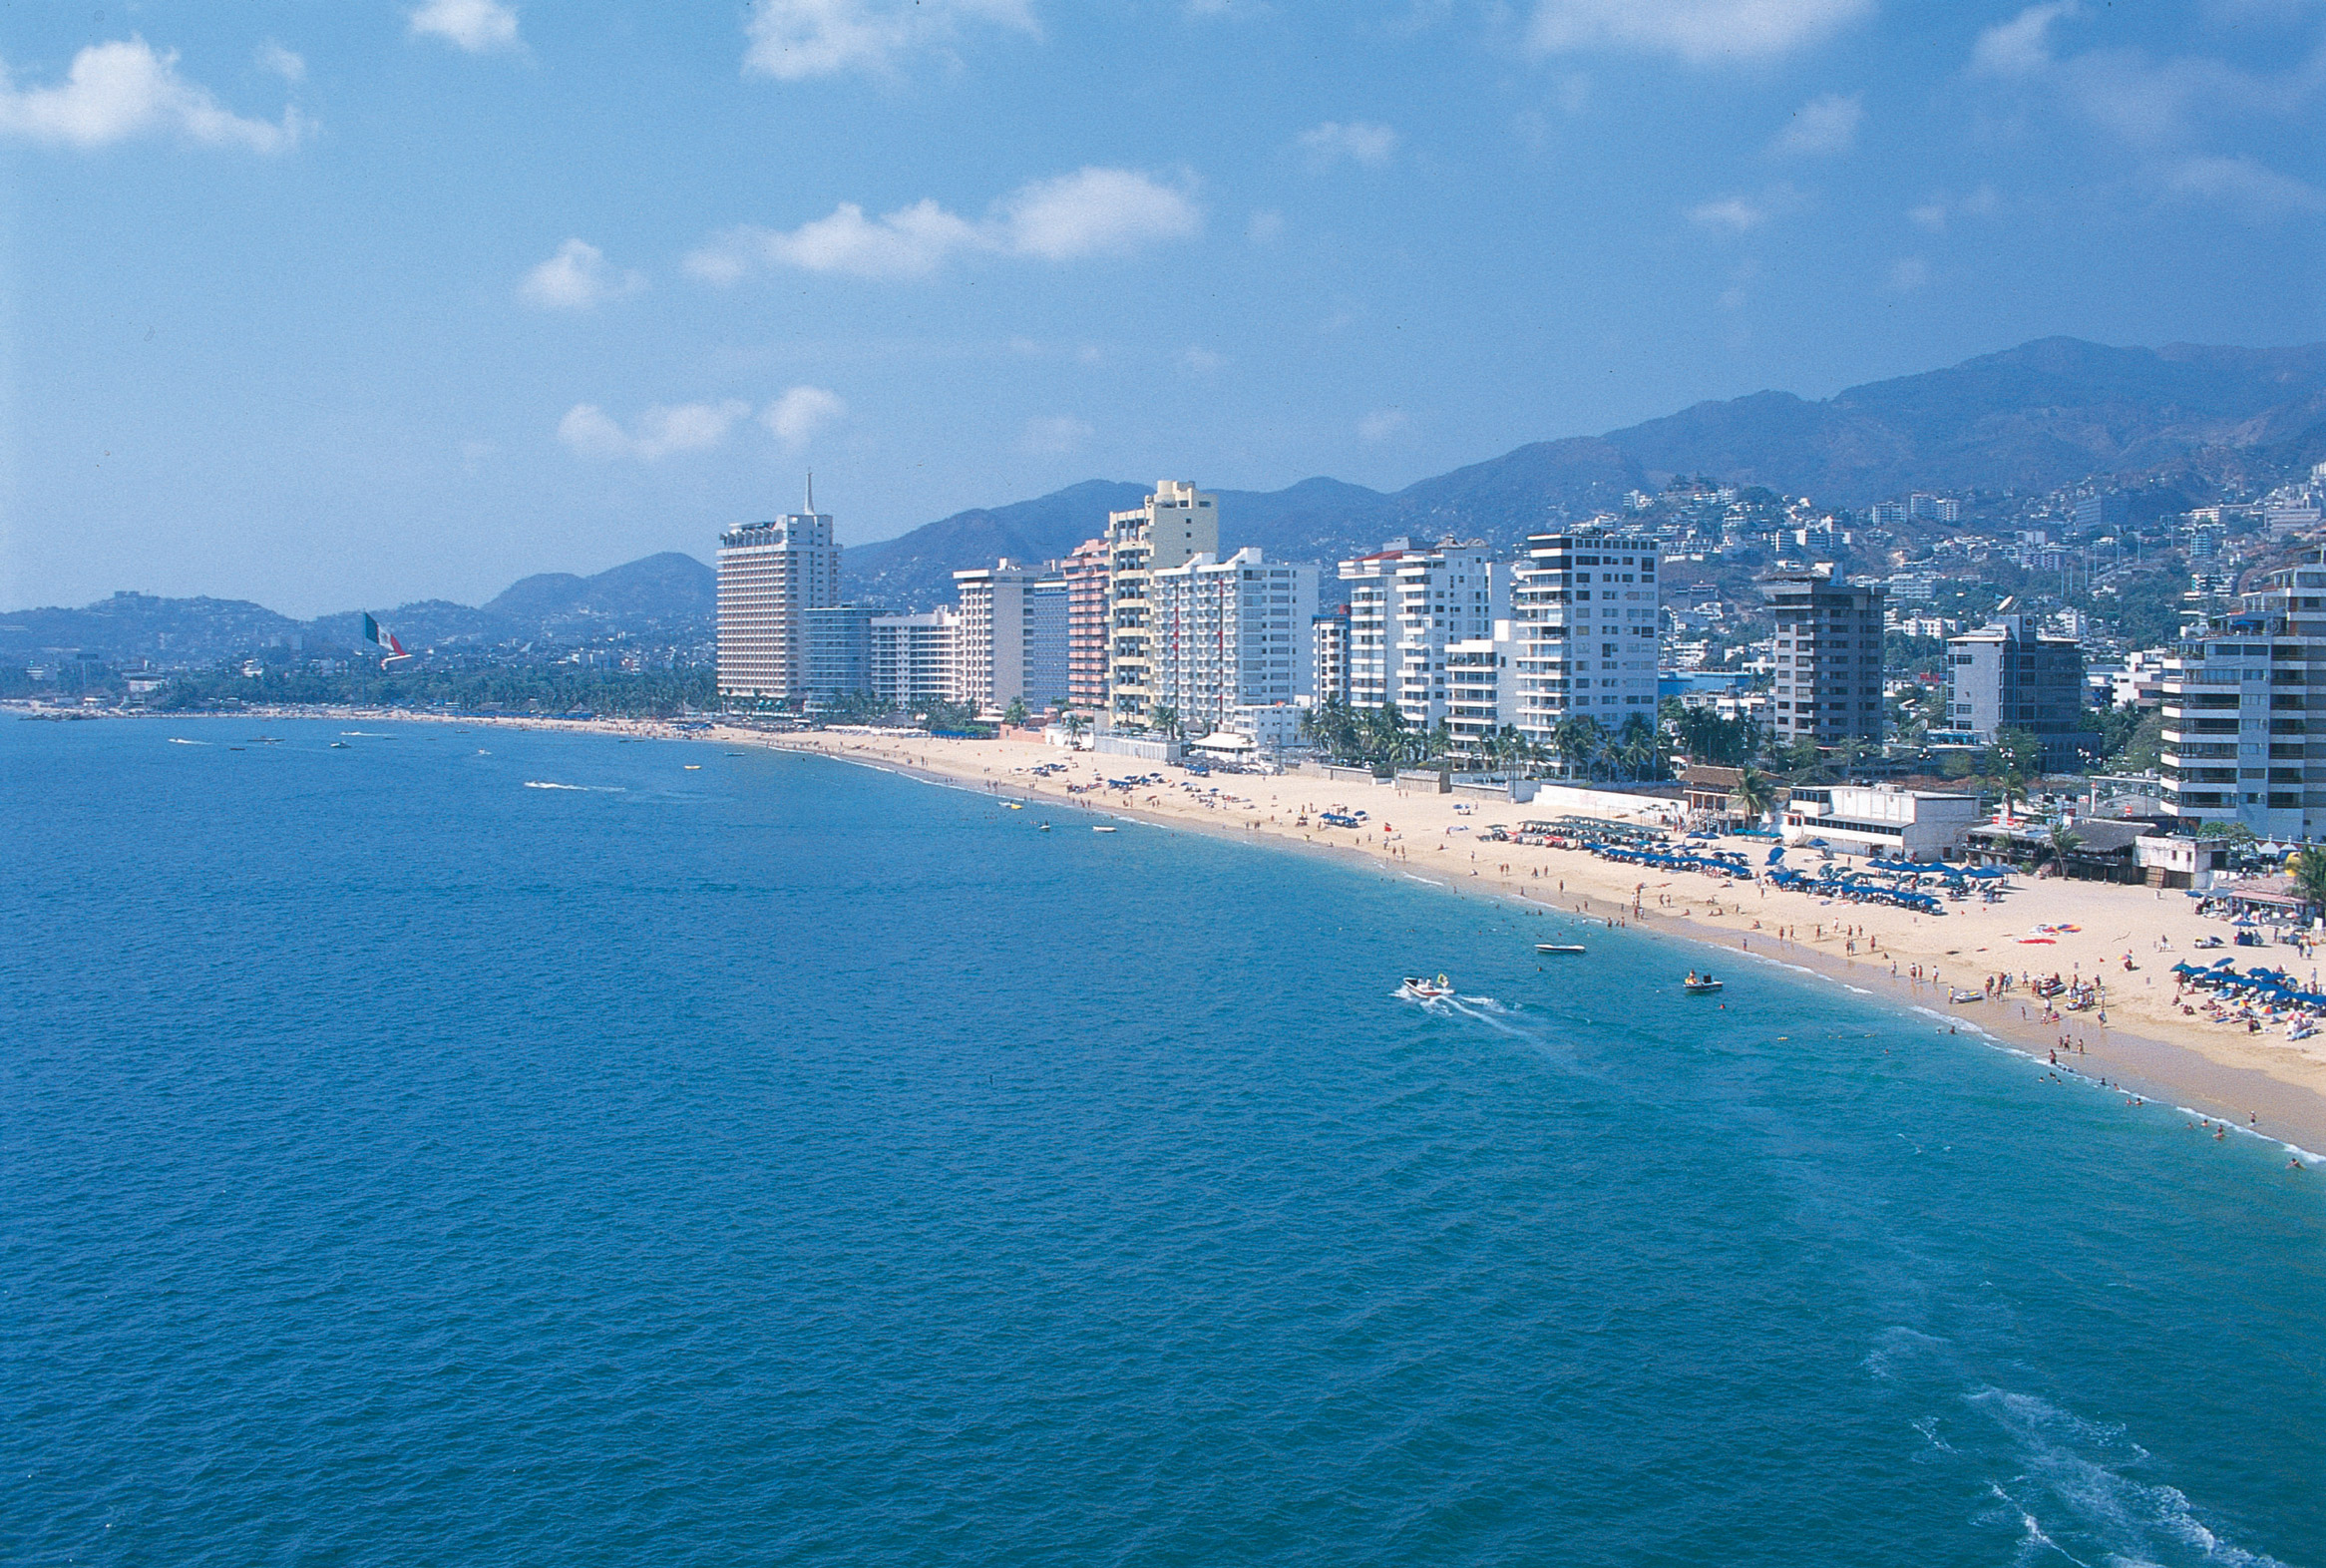 Last Minute Travel Deals To Acapulco Mexico